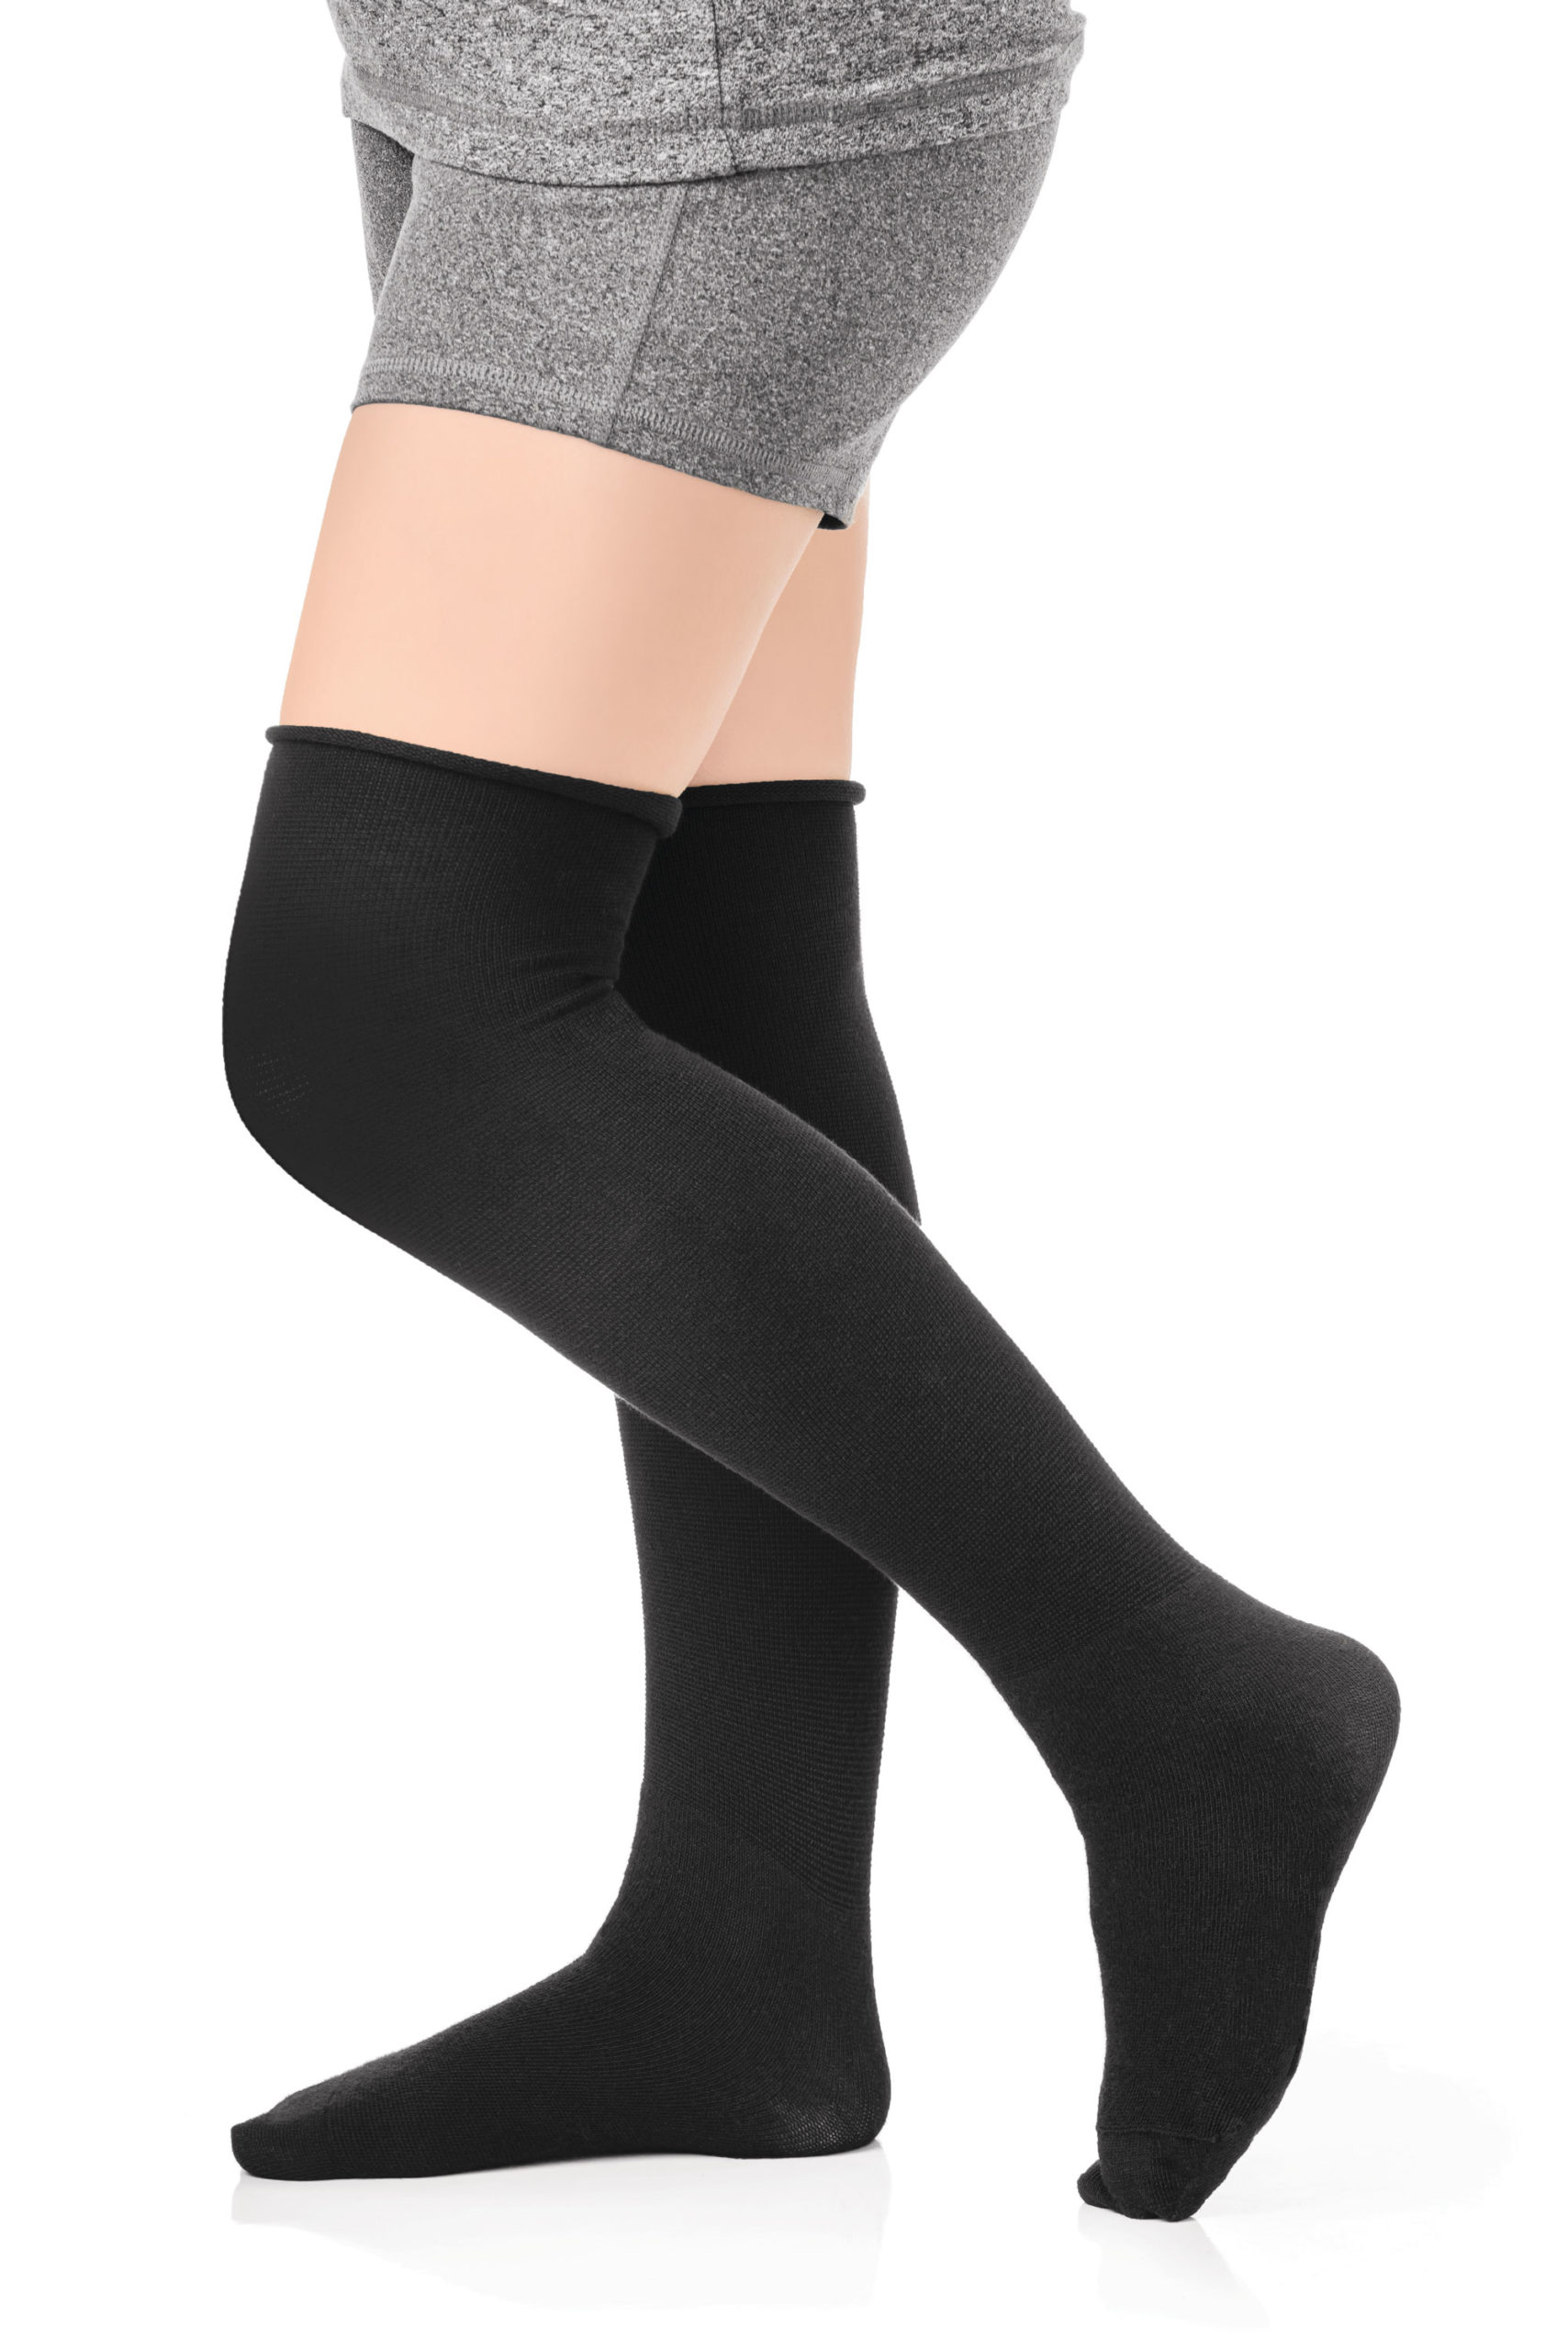 ReadyWrap Liner Below Knee -  (Pair)